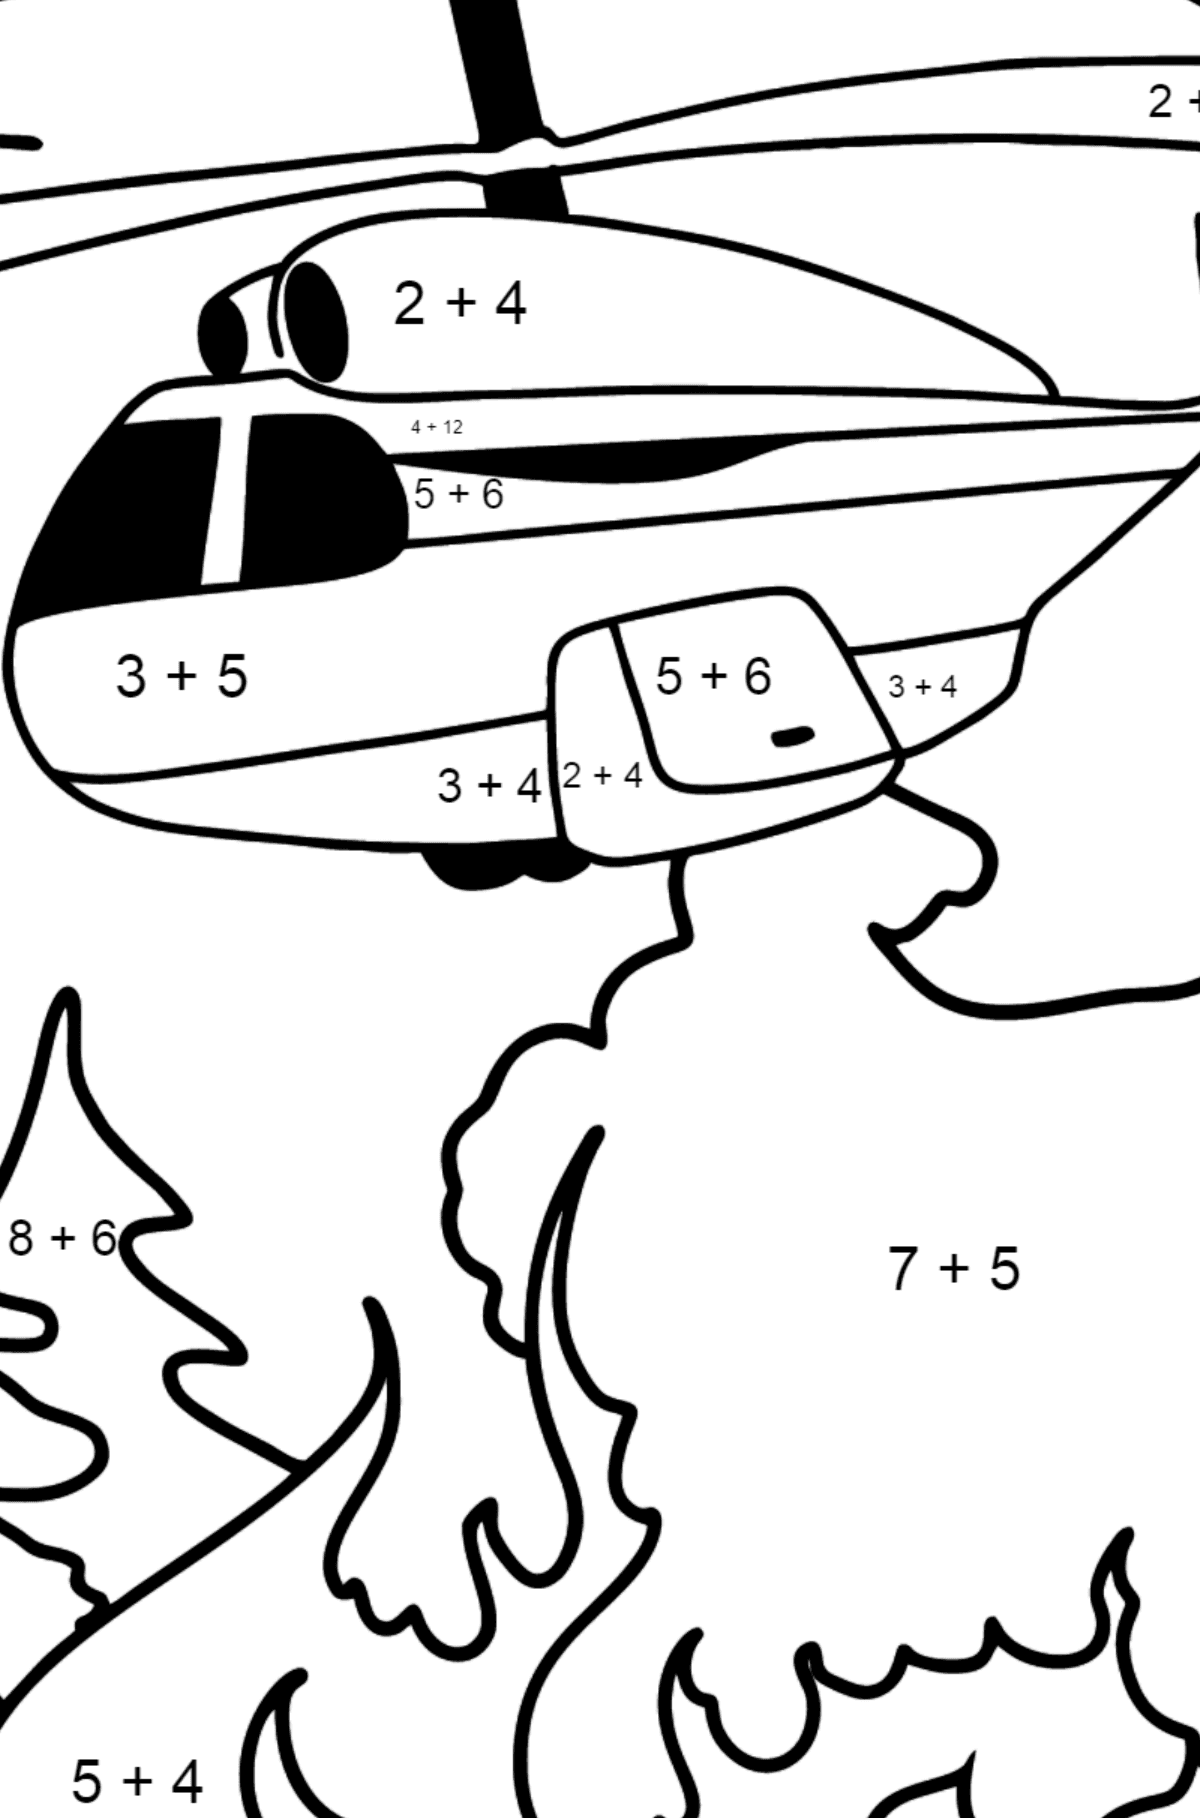 Helicopter Extinguishing Fire coloring page - Math Coloring - Addition for Kids